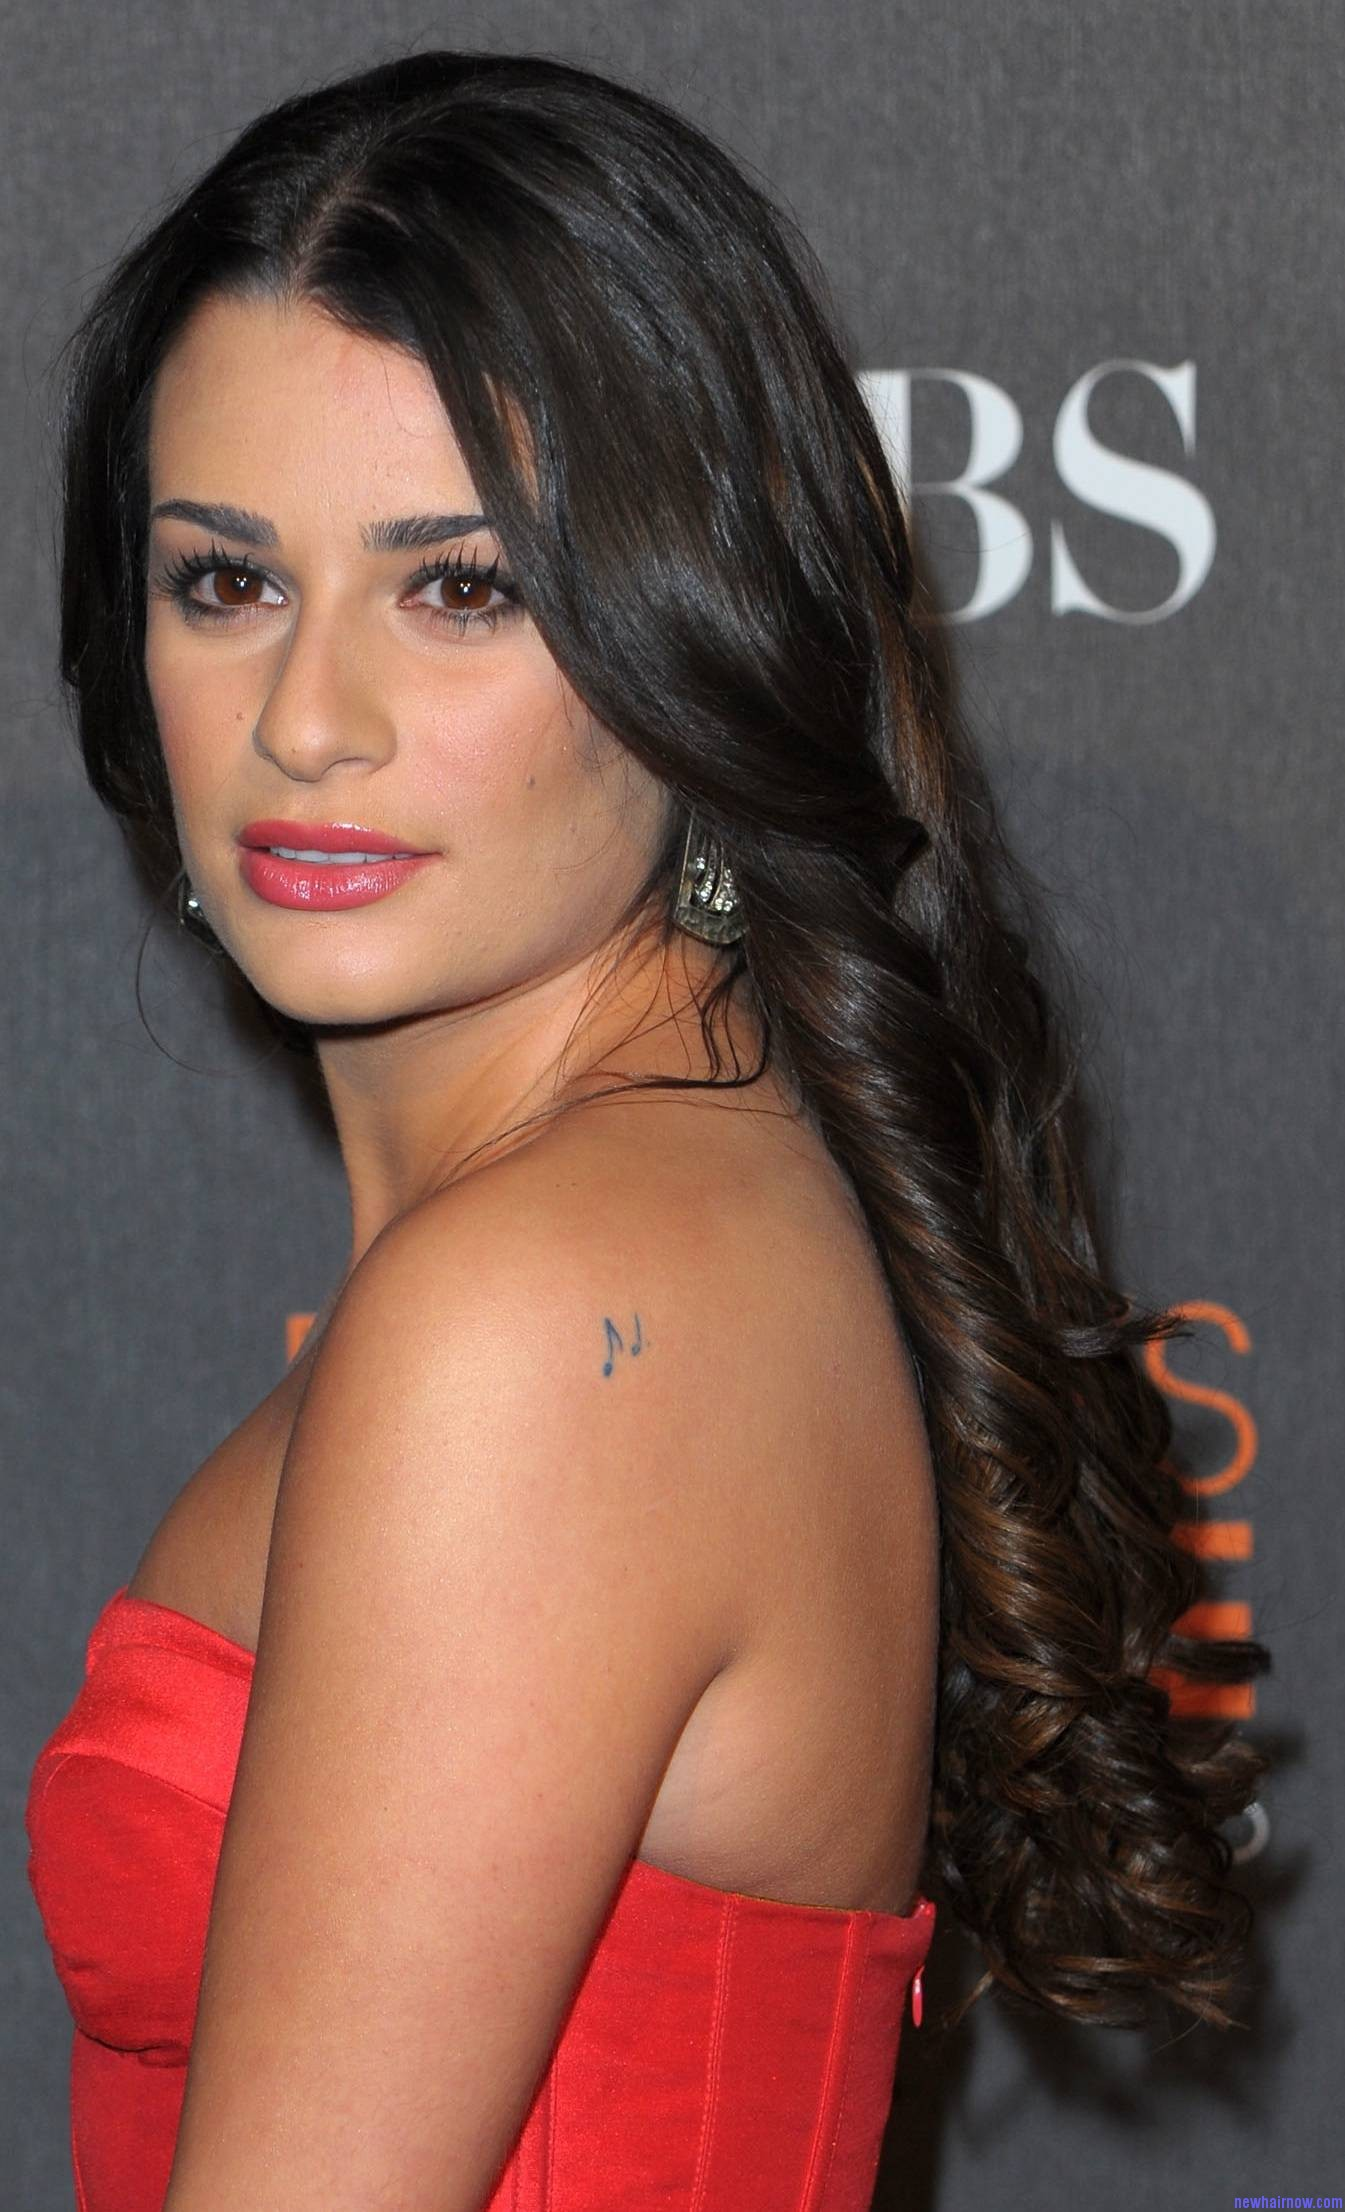 People's Choice Awards 2010 - Arrivals